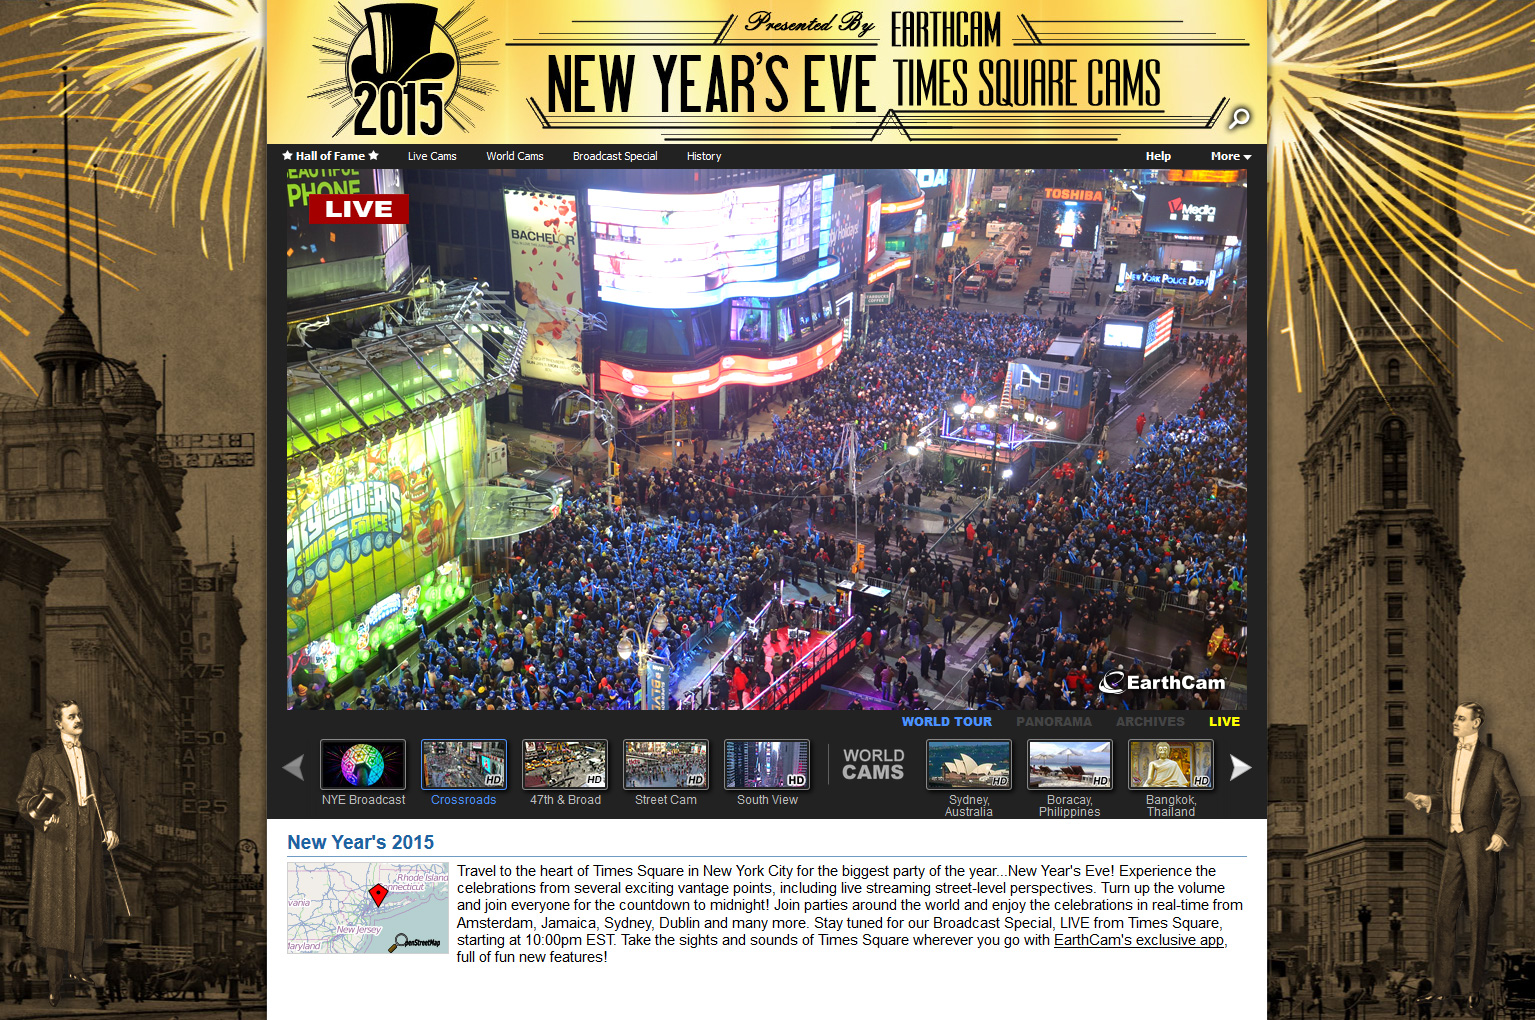 Travel the globe for the final countdown to 2015 with earthcams ring in the new year with earthcams live times square cams gumiabroncs Gallery